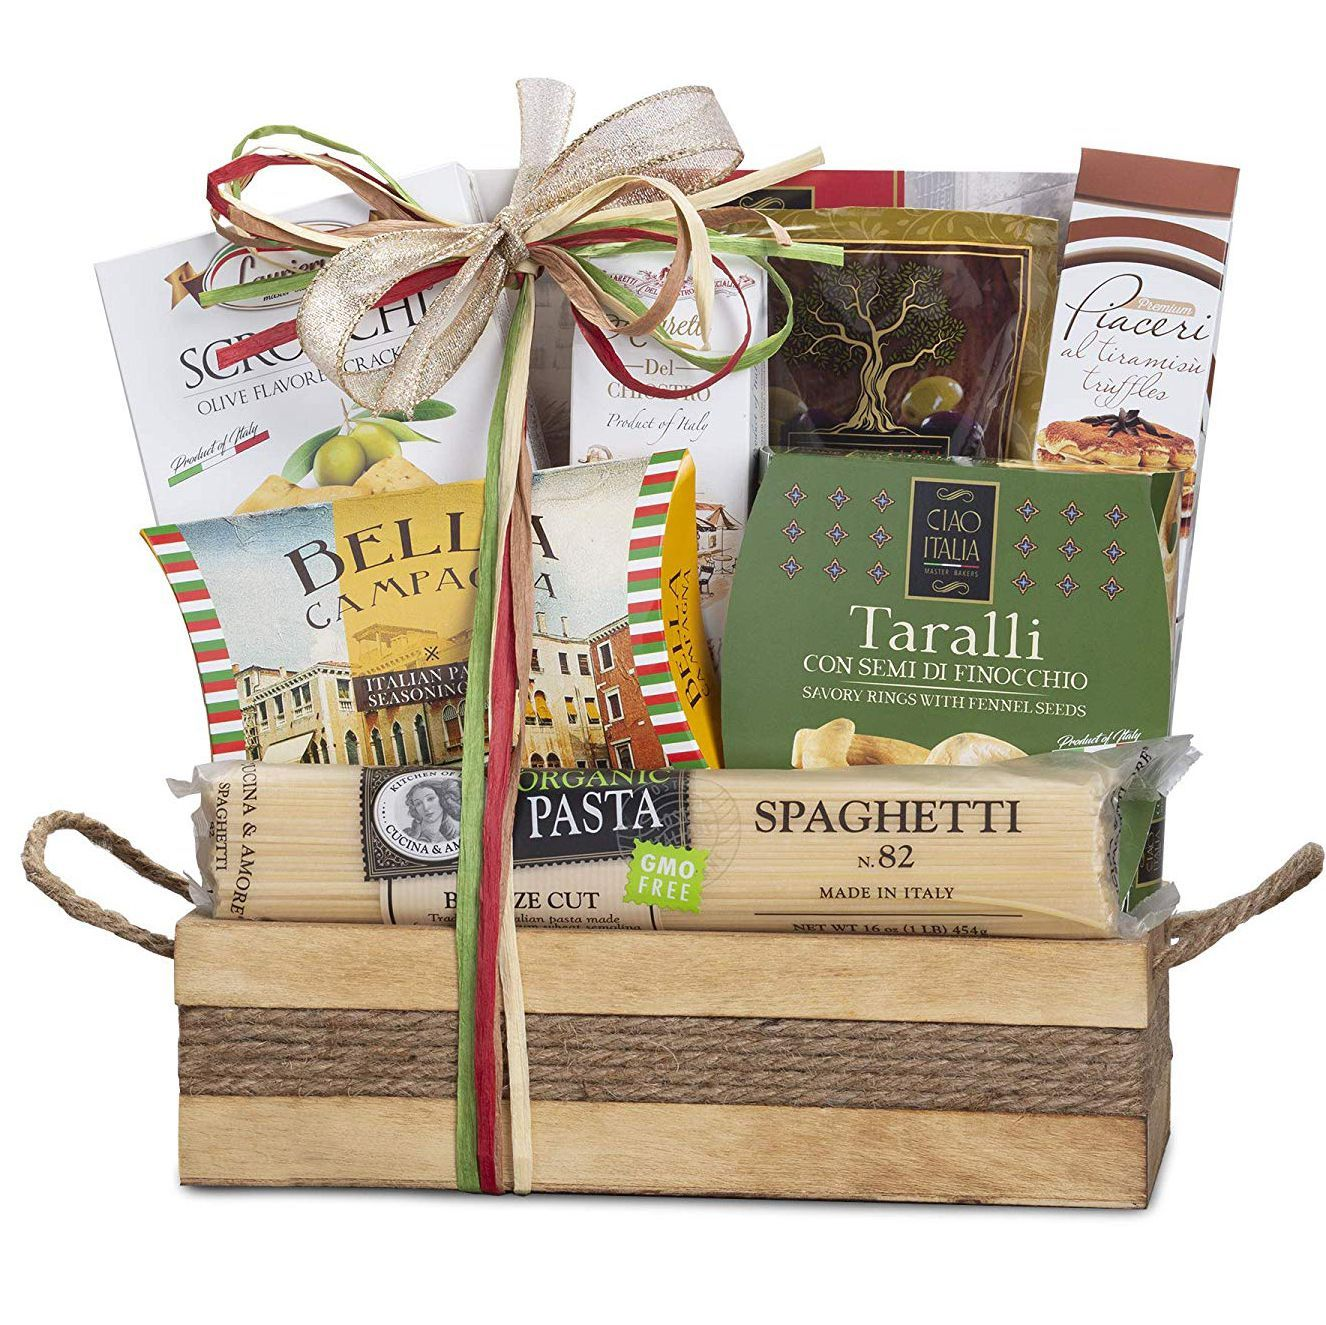 15+ Mother's Day Gift Basket Ideas - Best Gift Baskets for Mother's Day for EVERY Mom